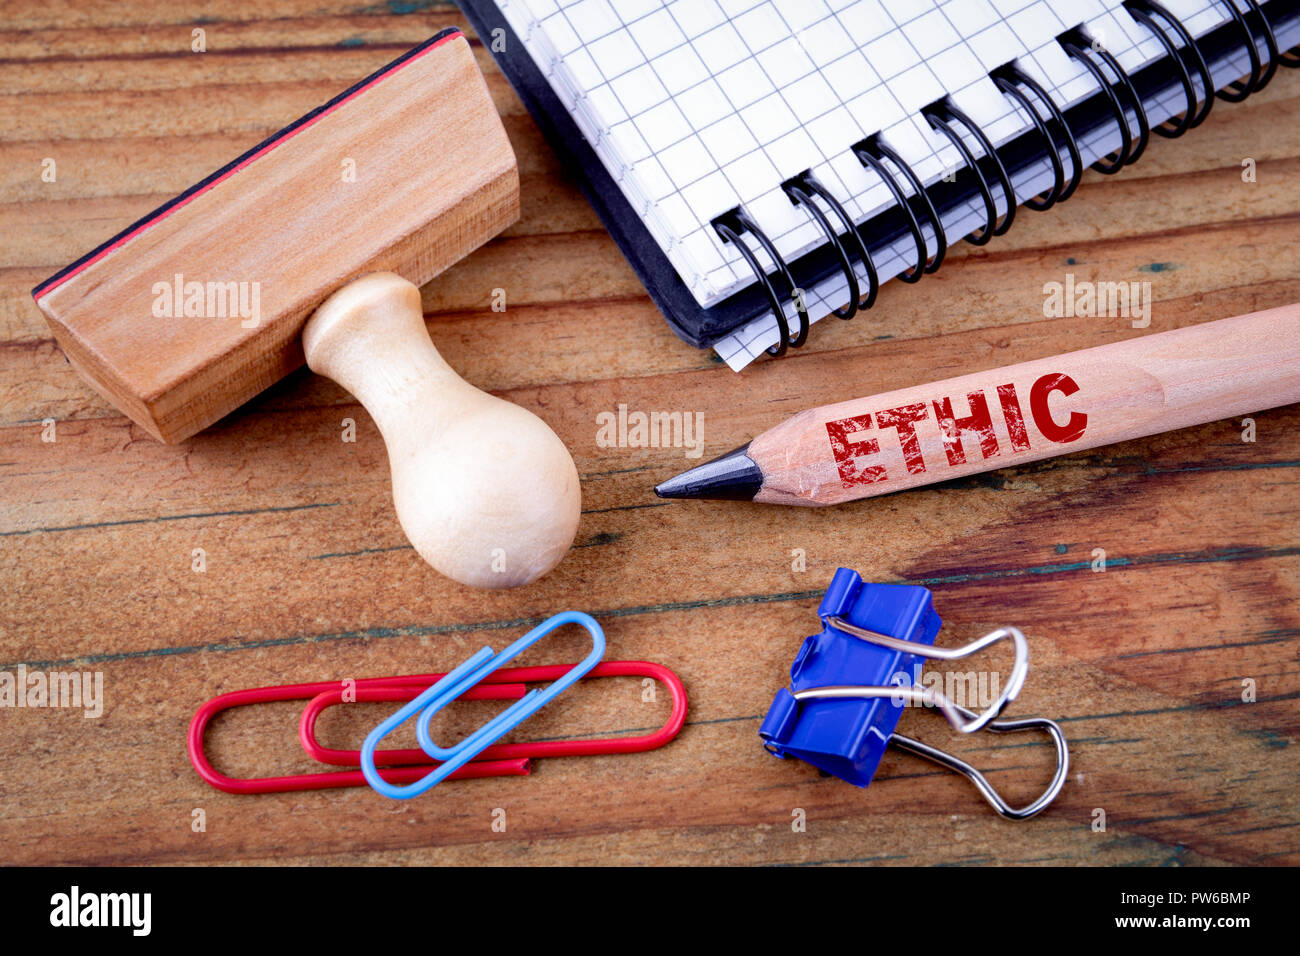 Ethic text on pencil - Stock Image